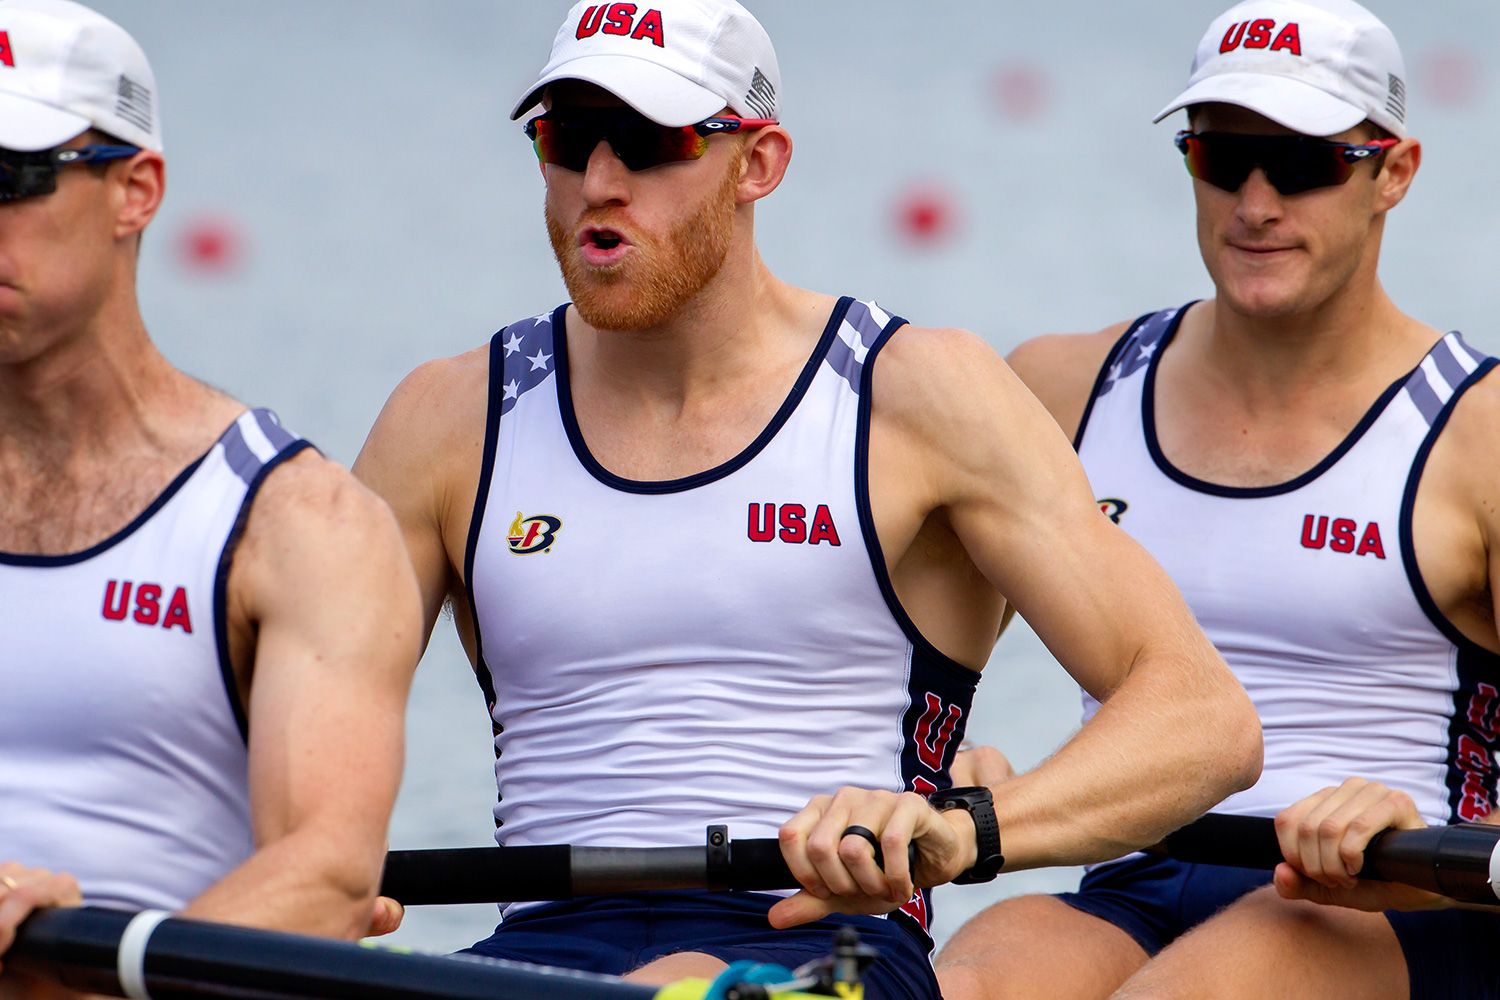 Olympic Rower Races From Rio Into First Year At Darden Uva Today